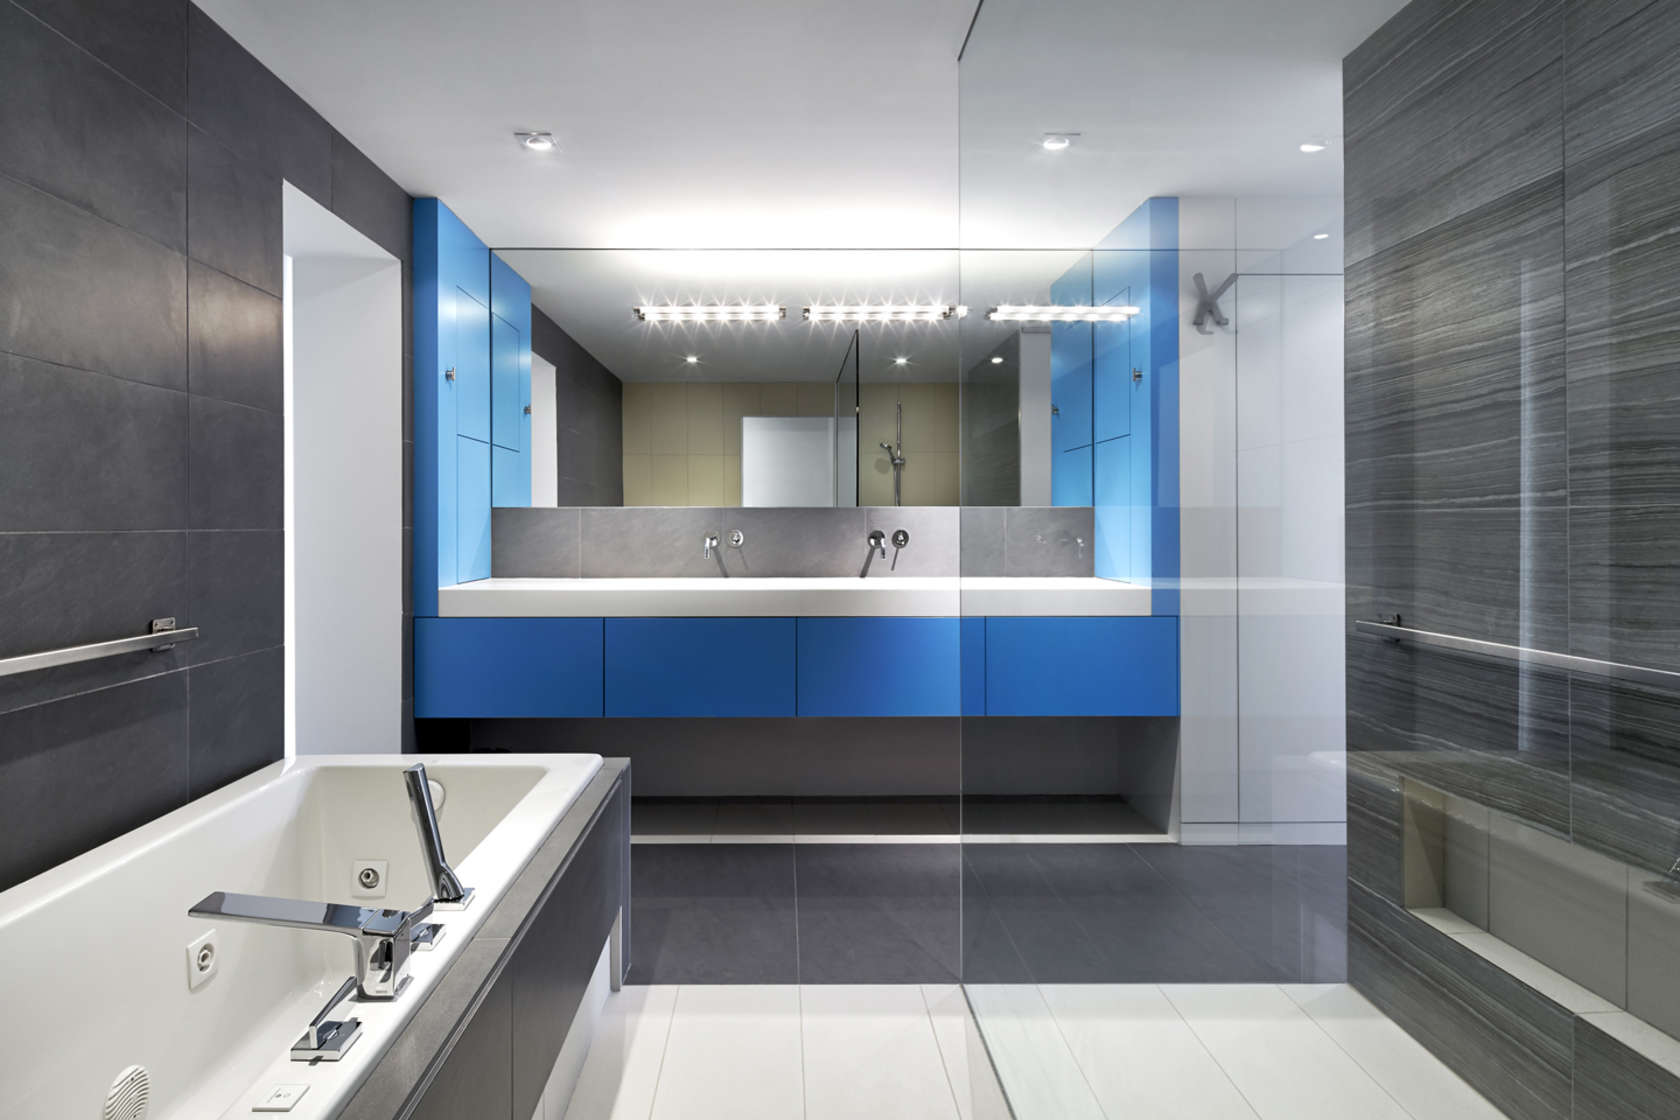 Bathroom Interior enchanting 40+ modern luxury bathroom blue interior inspiration of